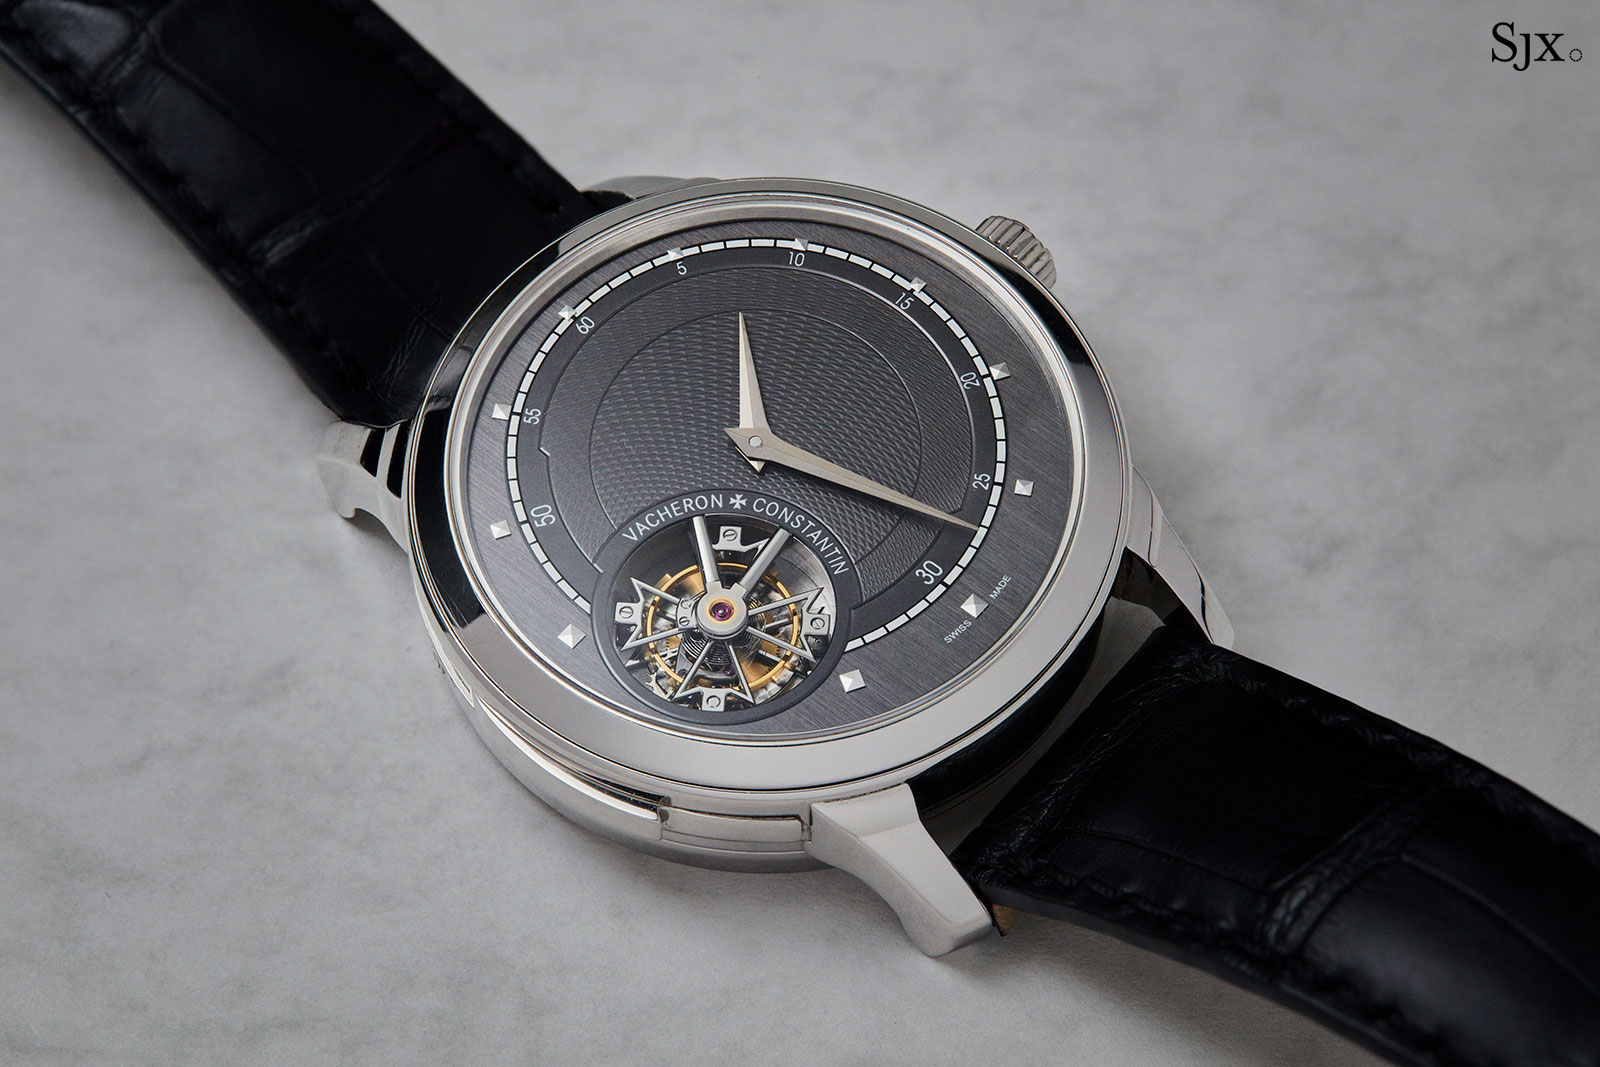 Vacheron Constantin Cabinotiers grand complication 30016-000P 6